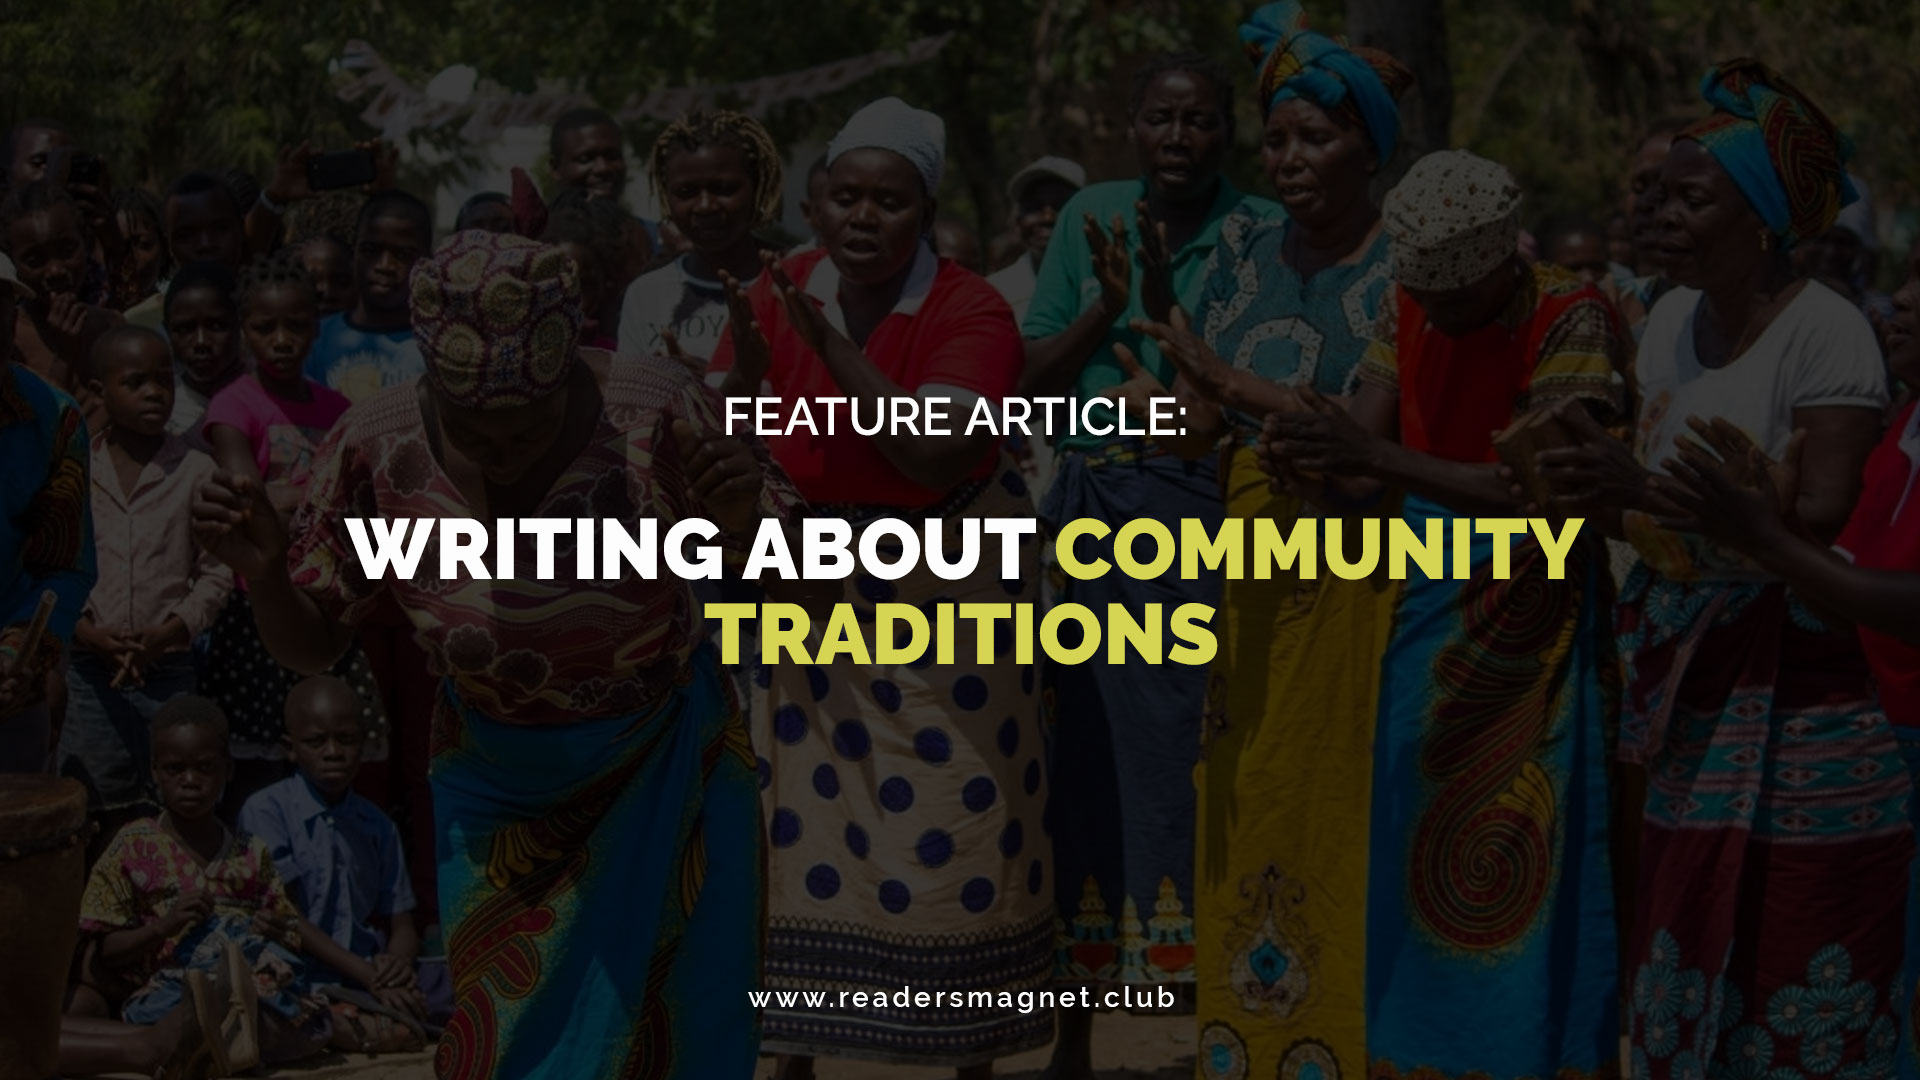 Feature-Article-Writing-About-Community-Traditions banner